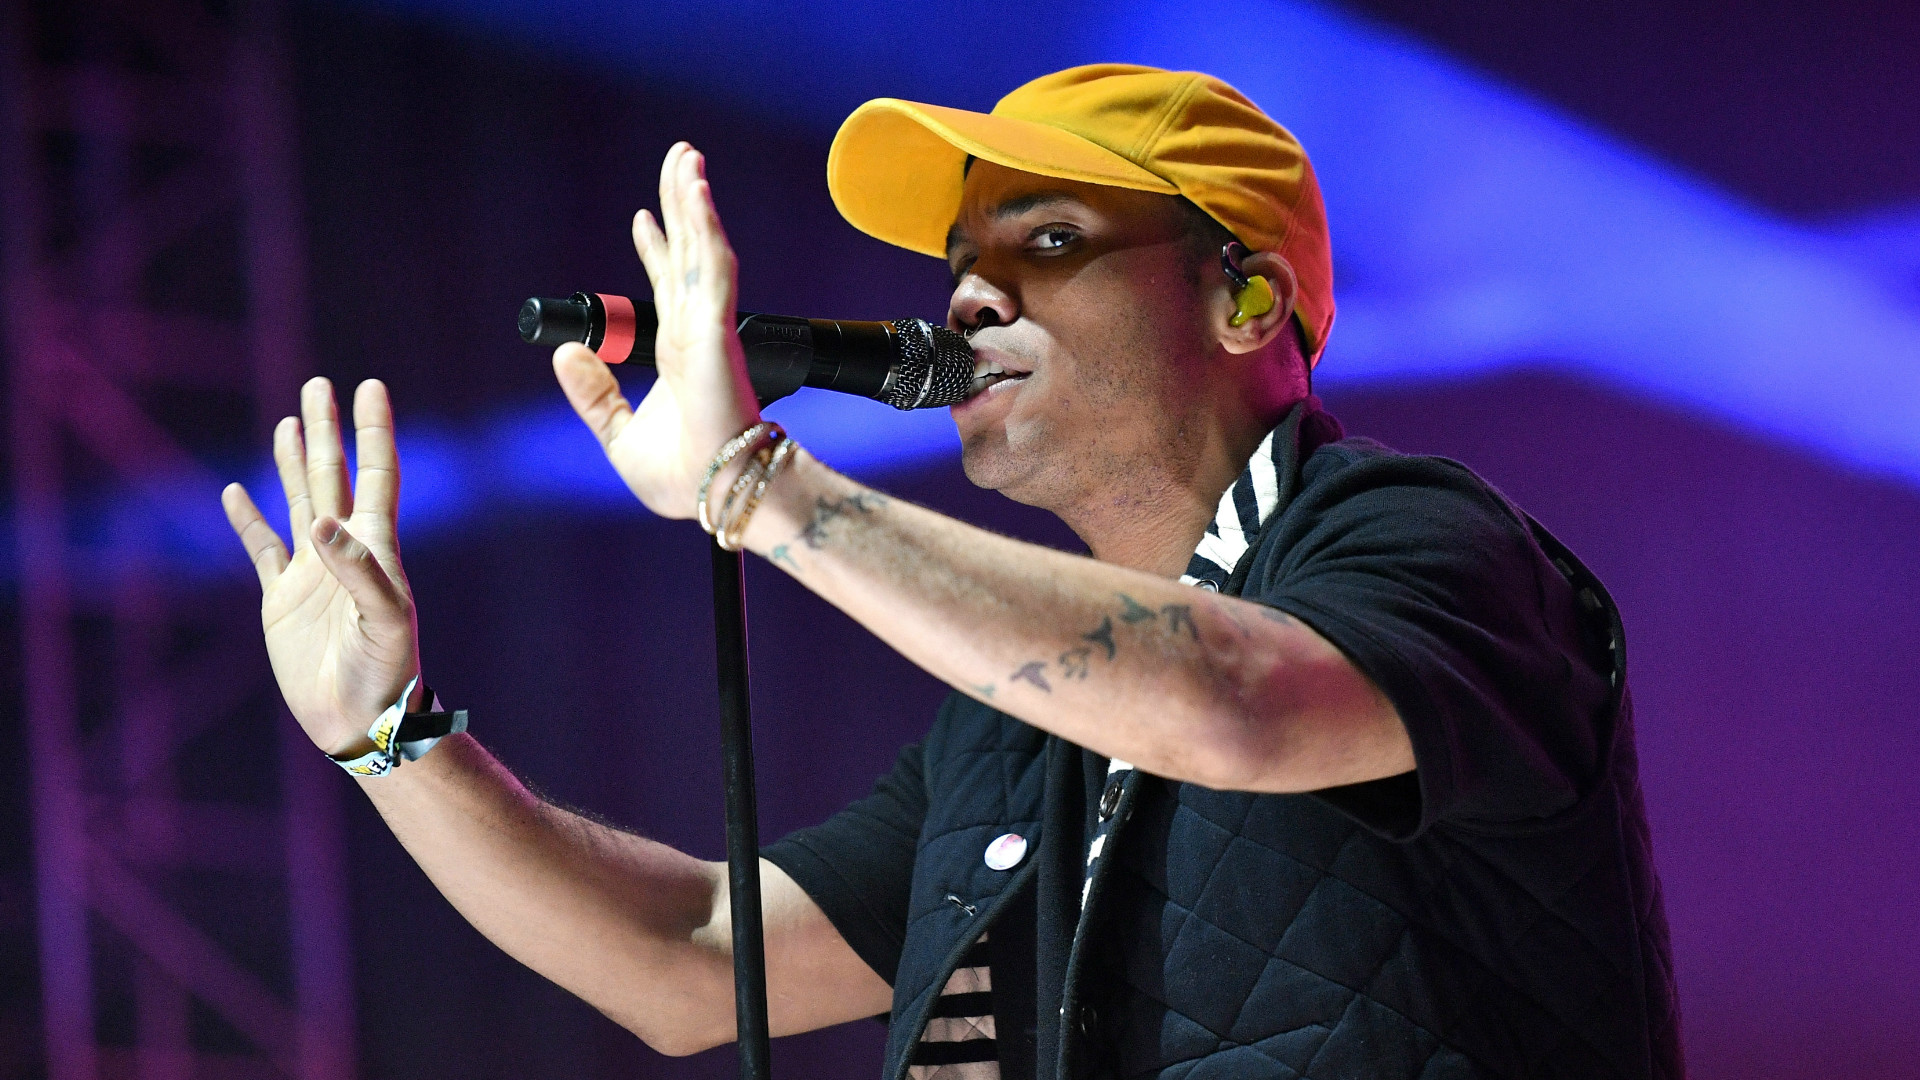 Musician Anderson .Paak performing live.